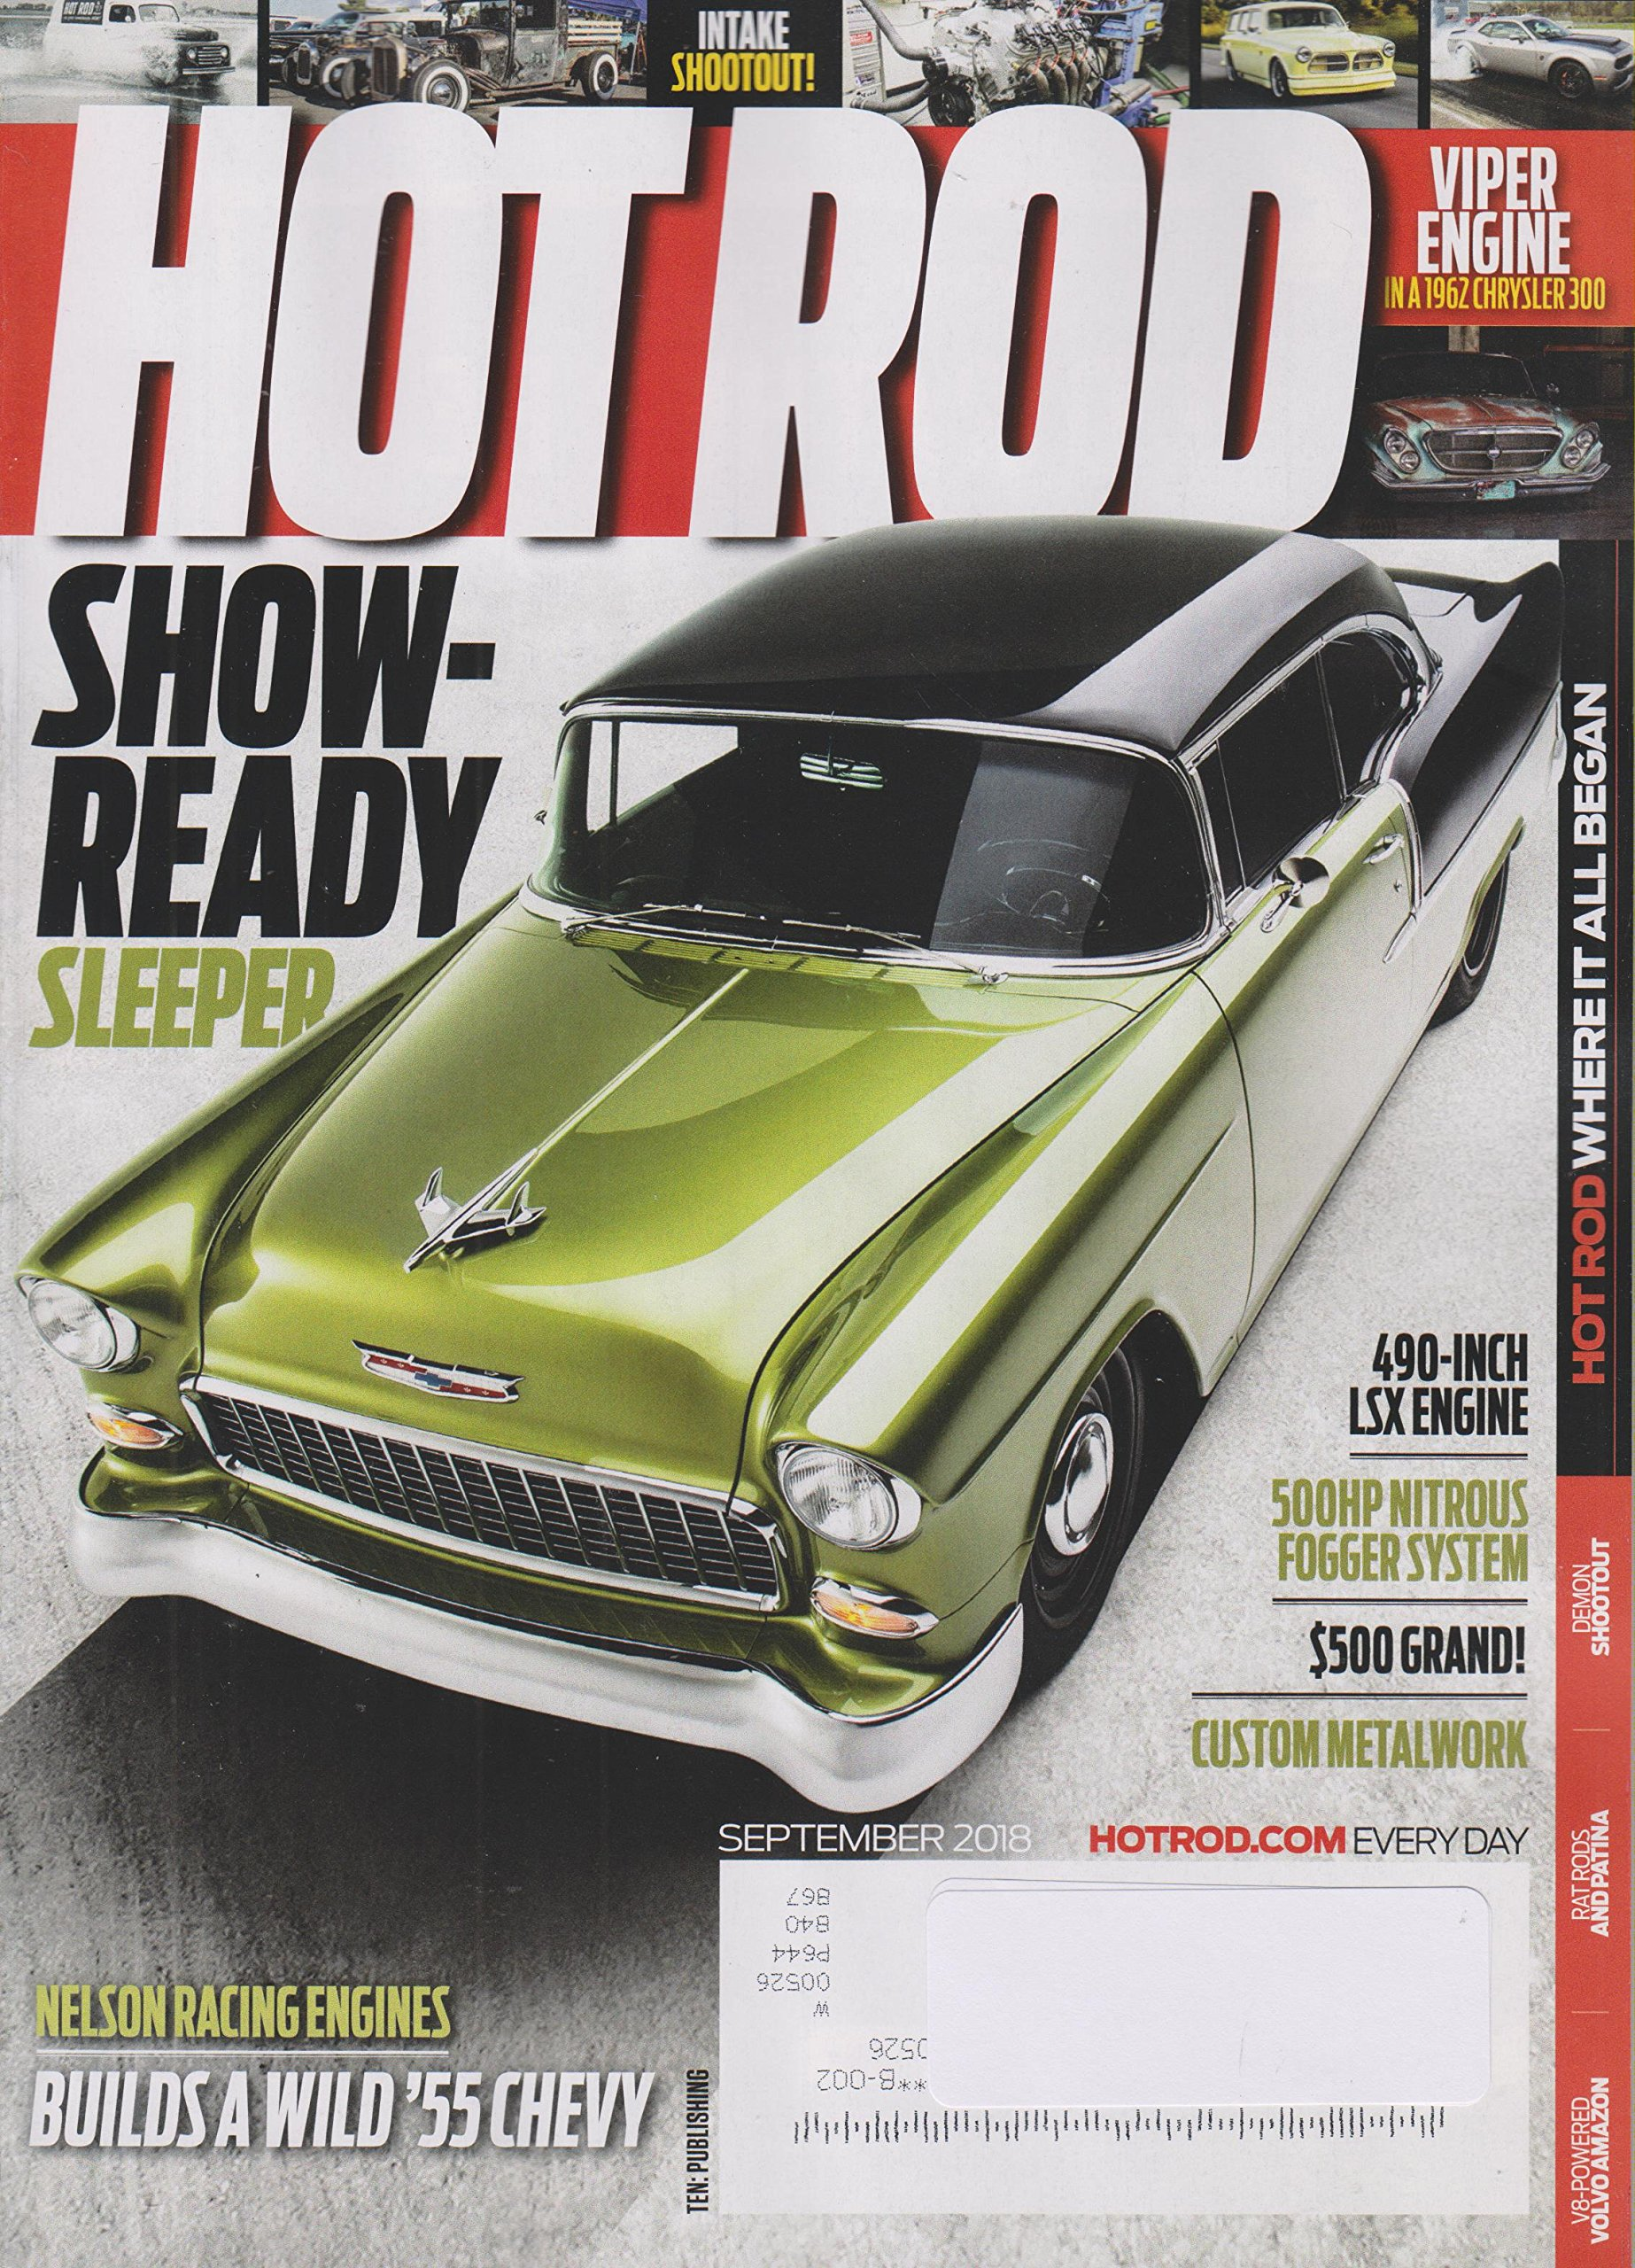 Hot Rod September 2018 Show-Ready Sleeper - Nelson Racing Engines Builds a Wild '55 Chevy pdf epub